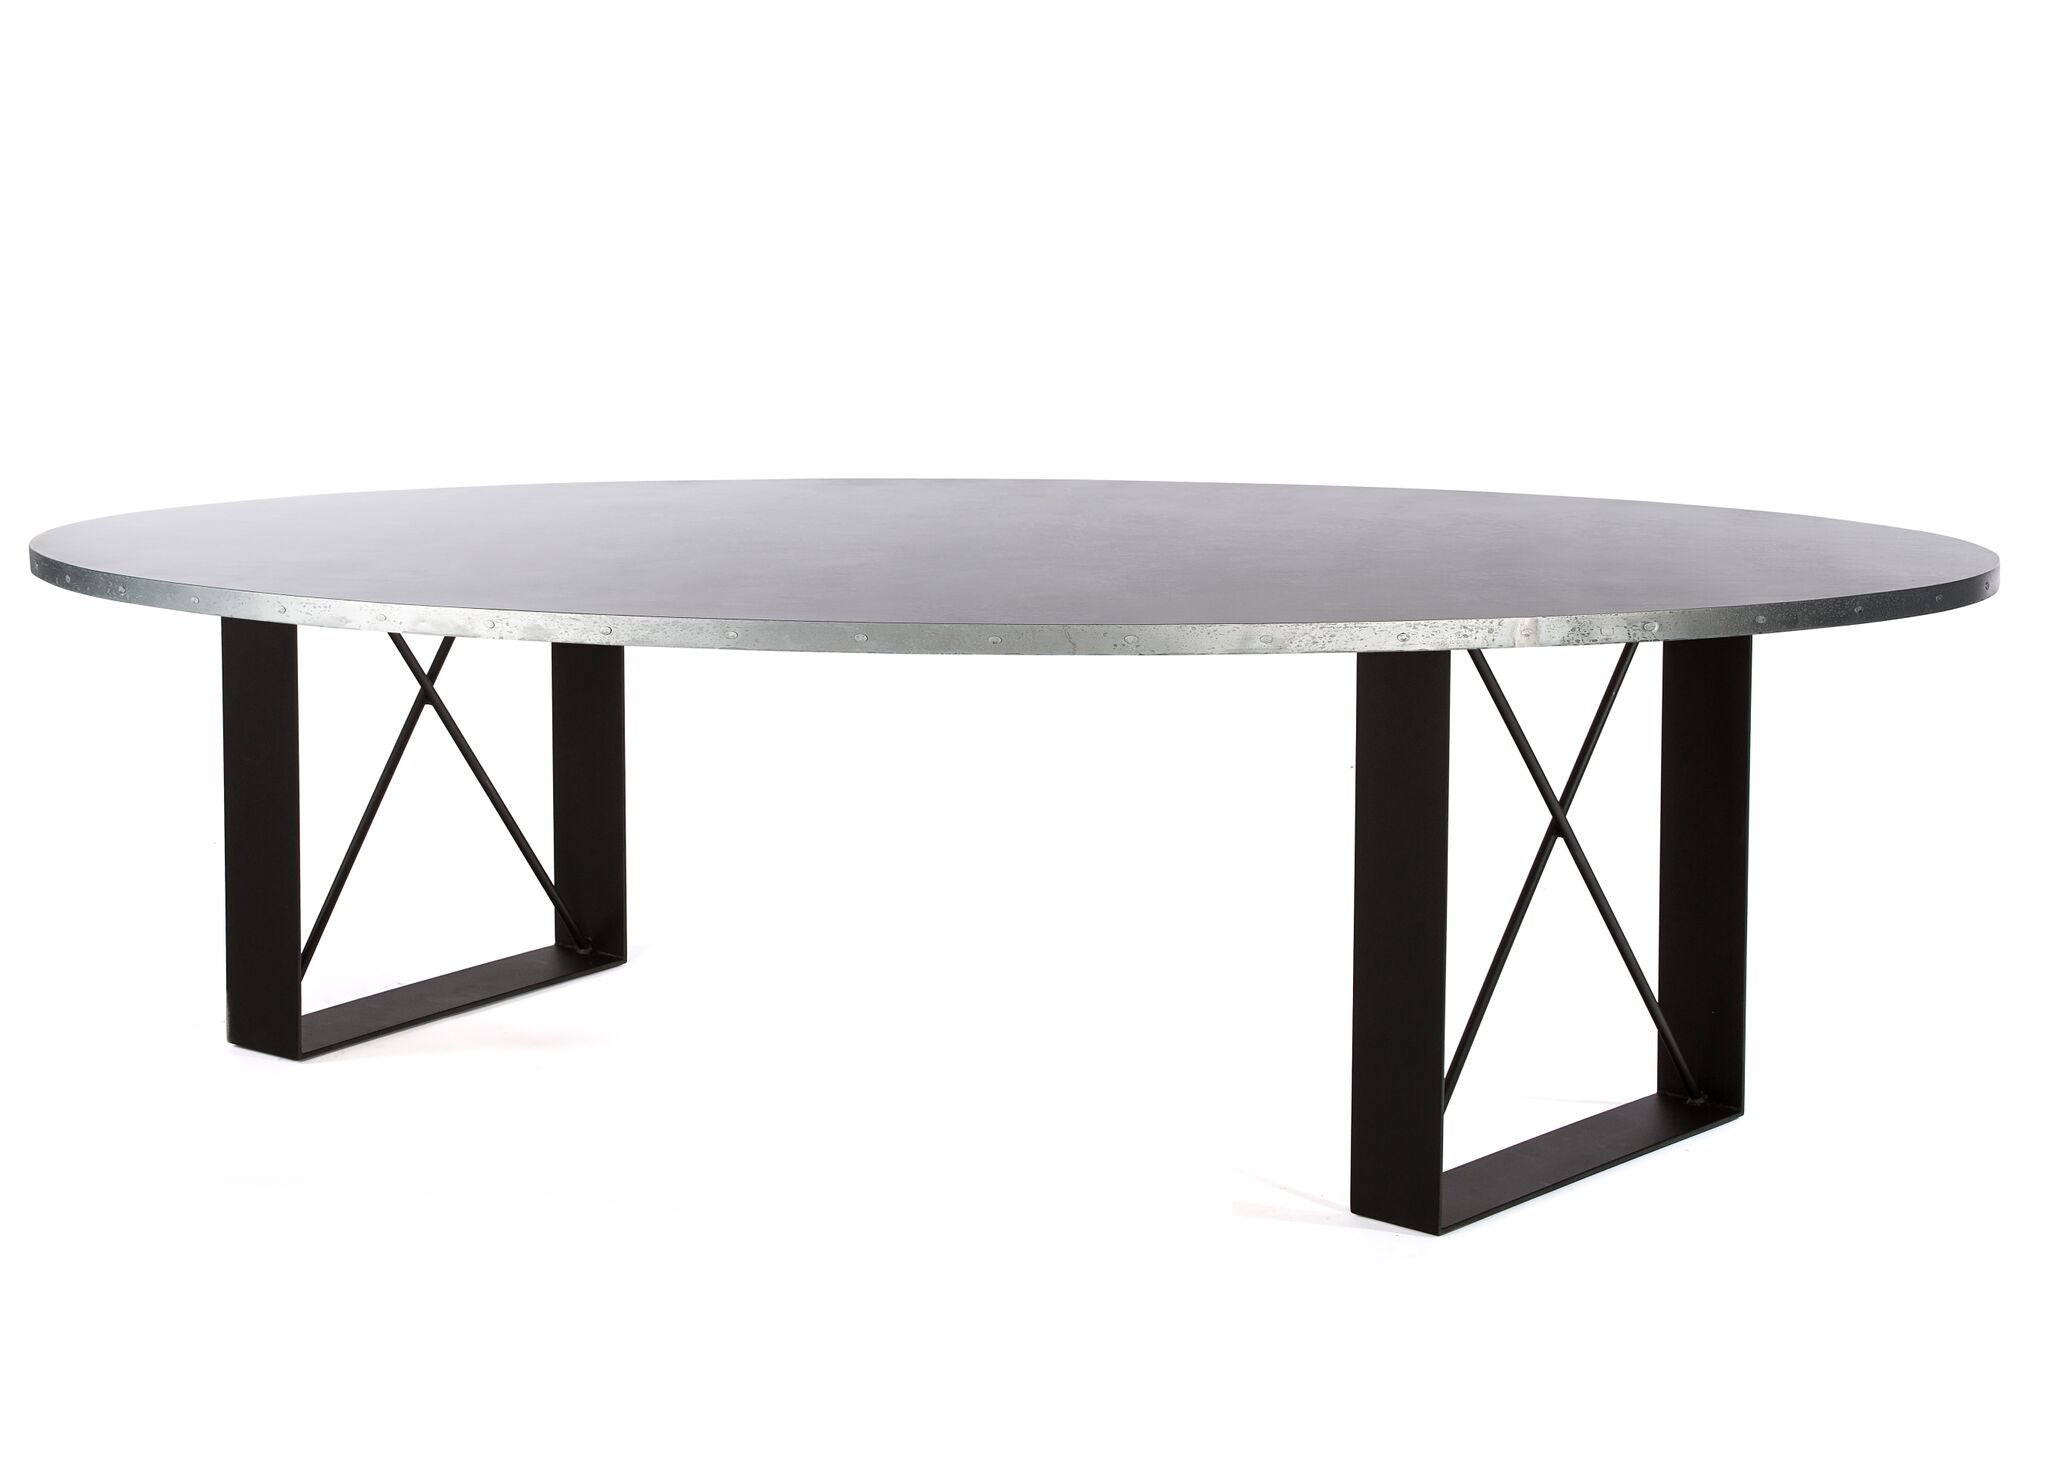 "Zinc Oval Tables | Soho Table | CLASSIC | Black on Steel | CUSTOM SIZE L 72 W 37 H 30 | 1.5"" Standard 